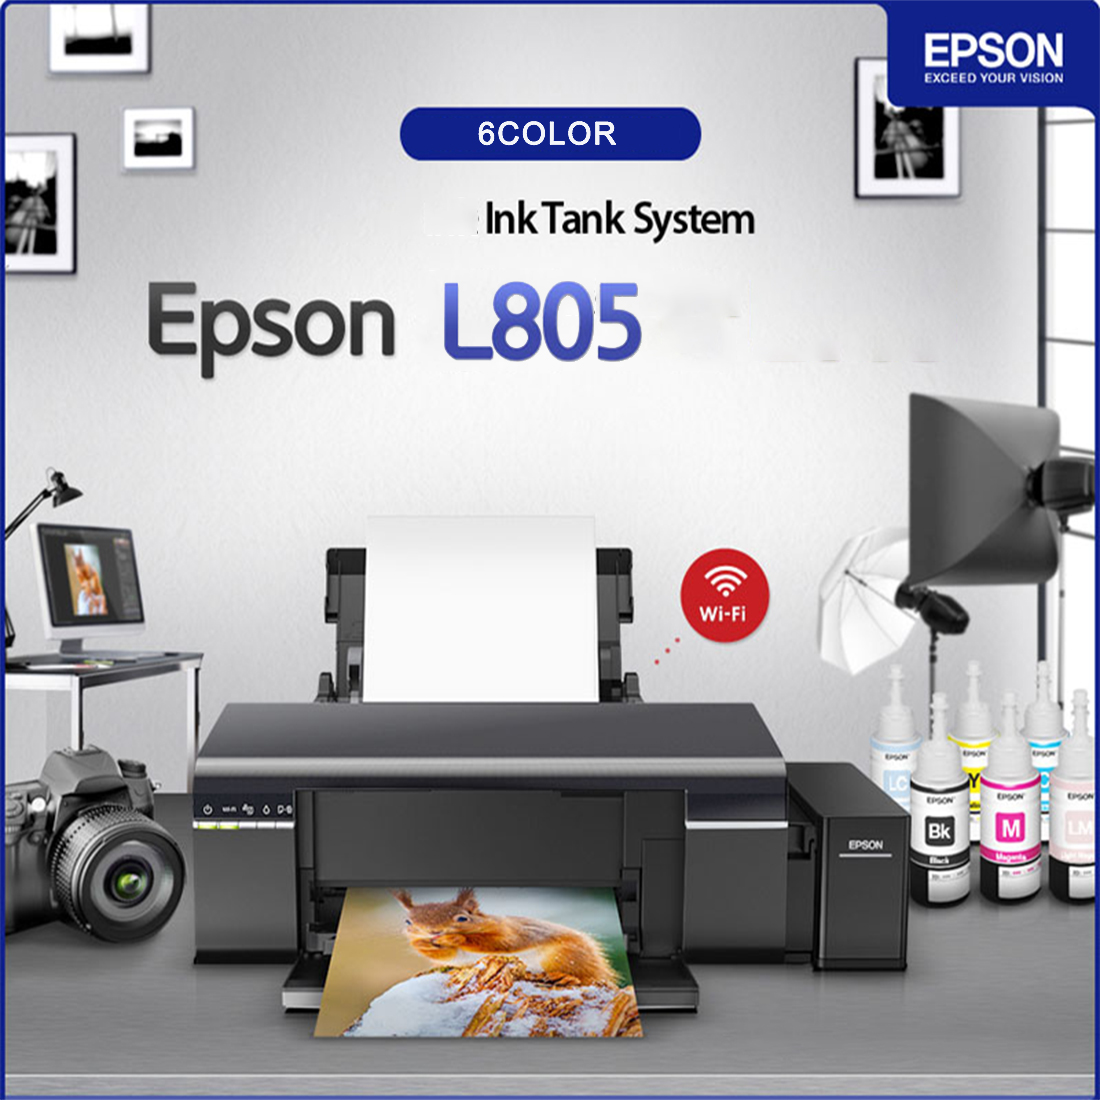 Details about EPSON L805 6-Color Wireless Inkjet Photo Printer Ink Tank  Continue Wi-Fi Support